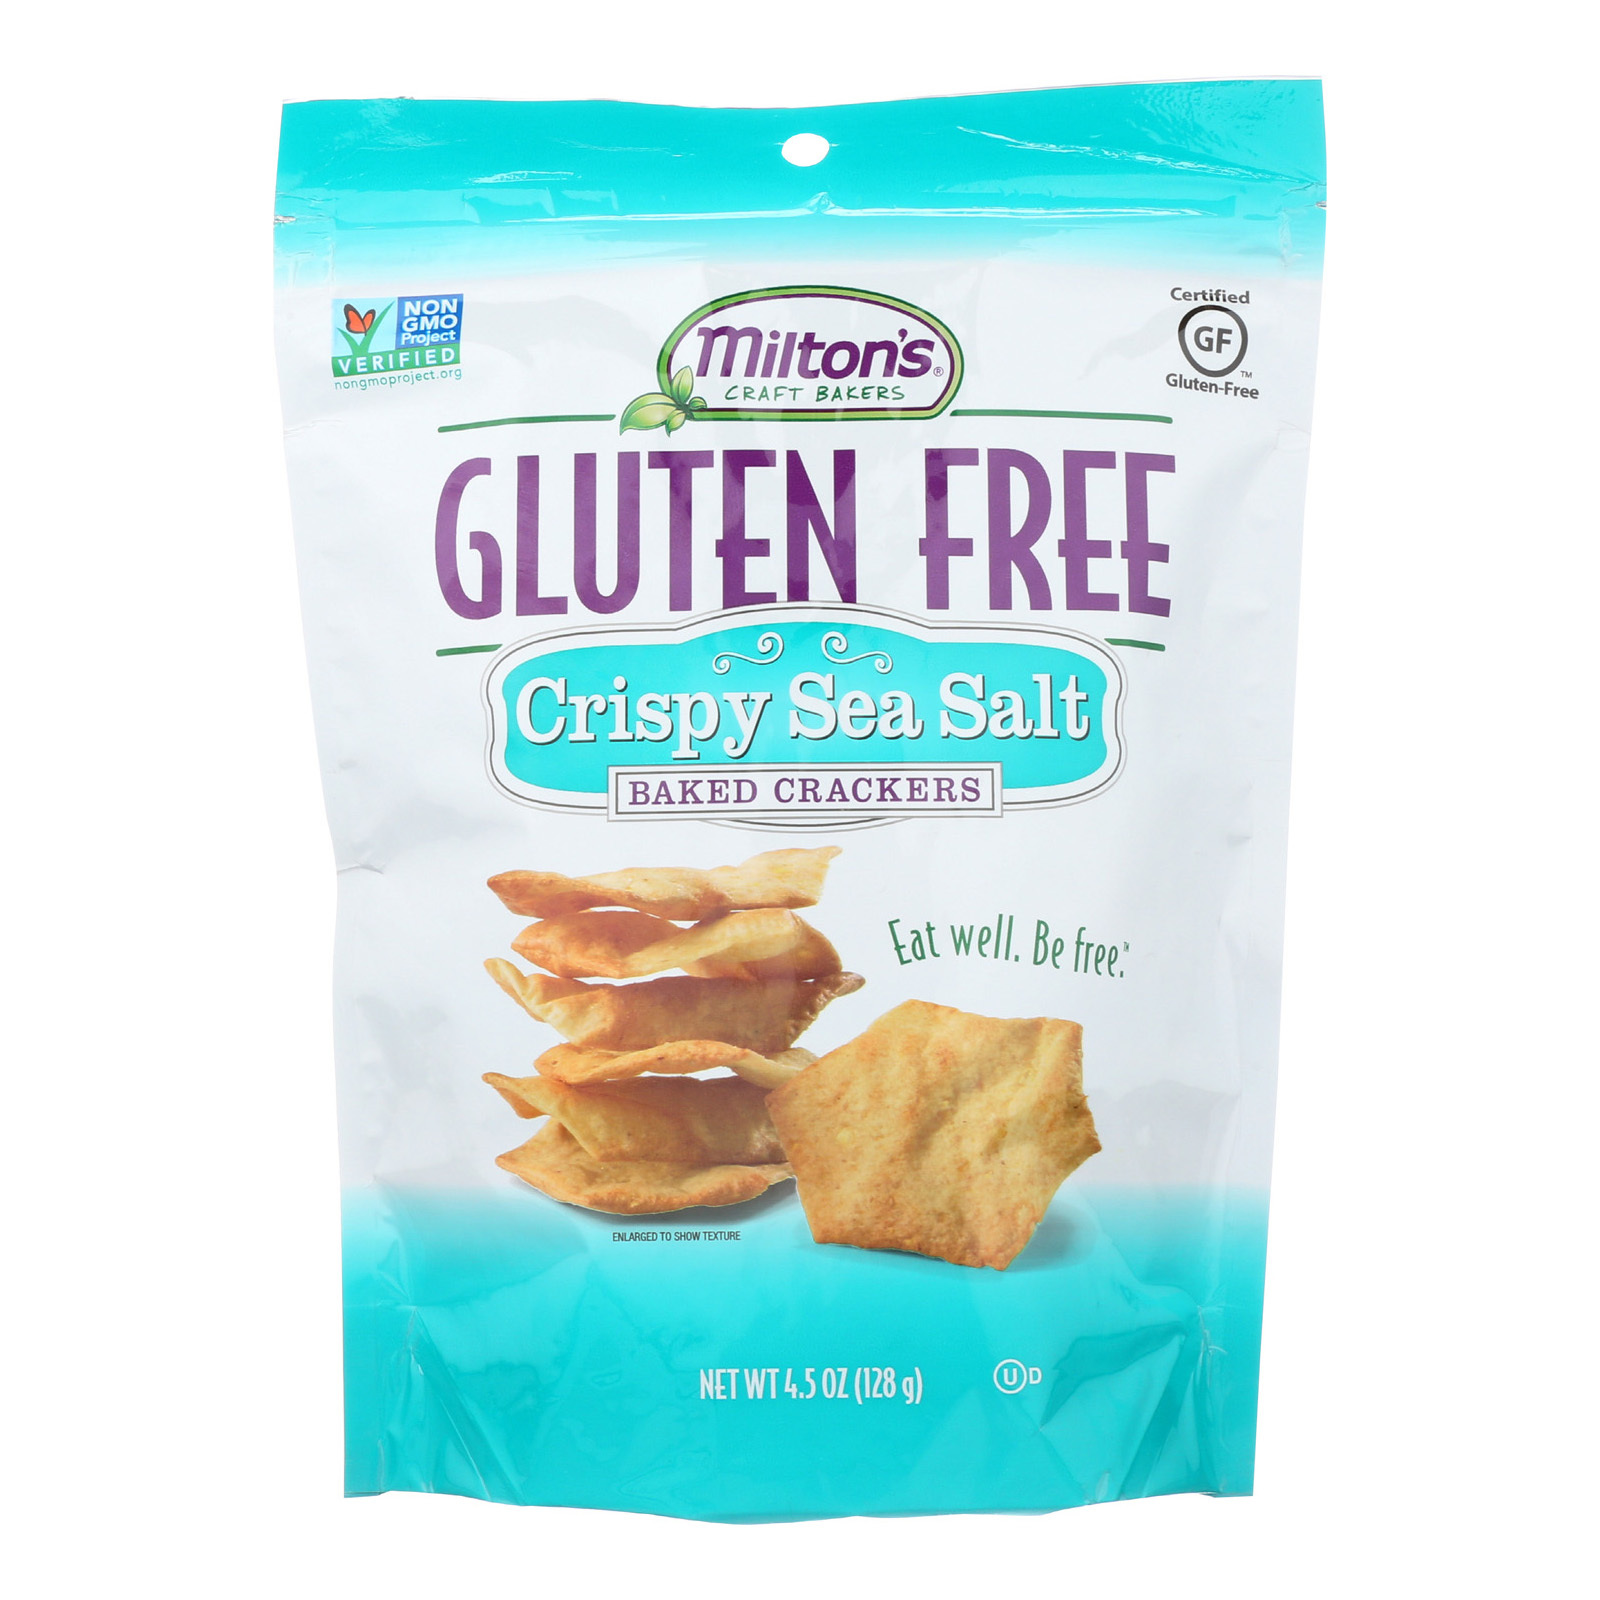 Miltons Gluten Free Baked Crackers - Crispy Sea Salt - Case of 12 - 4.5 oz.